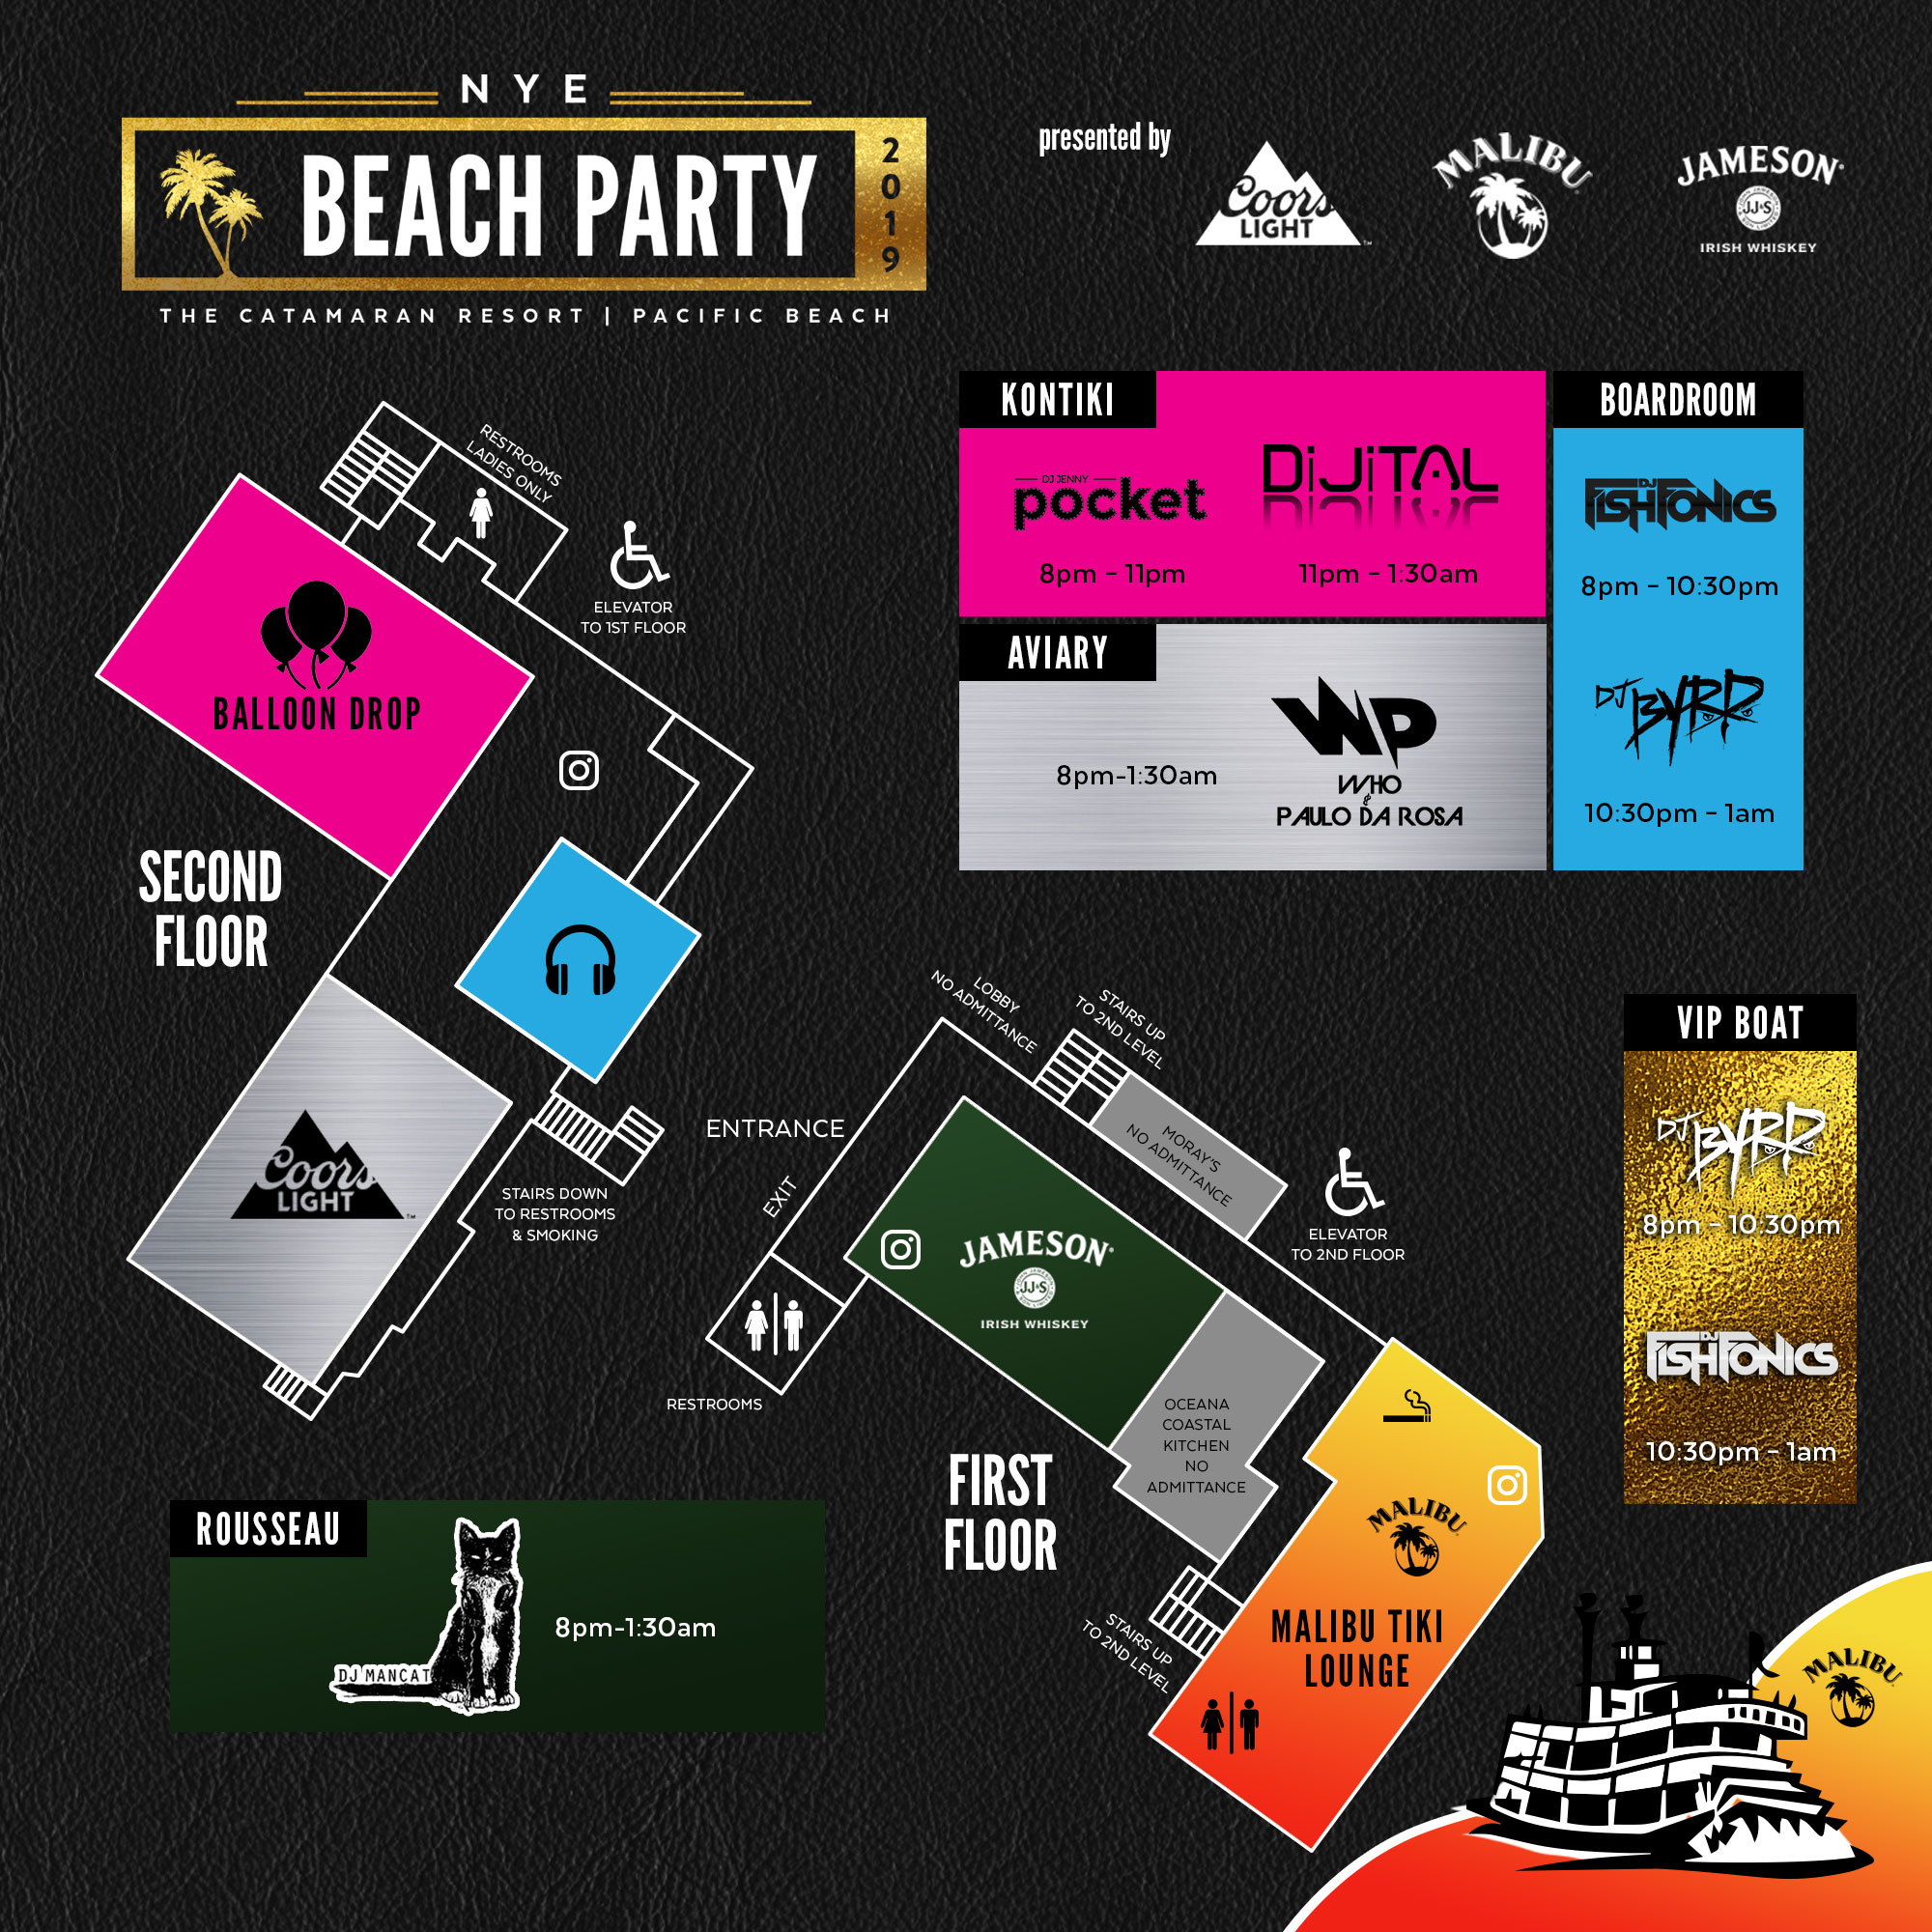 7094c1866ac8 Party Map - New Year's Eve Beach Party 2019 - San Diego New Year's ...